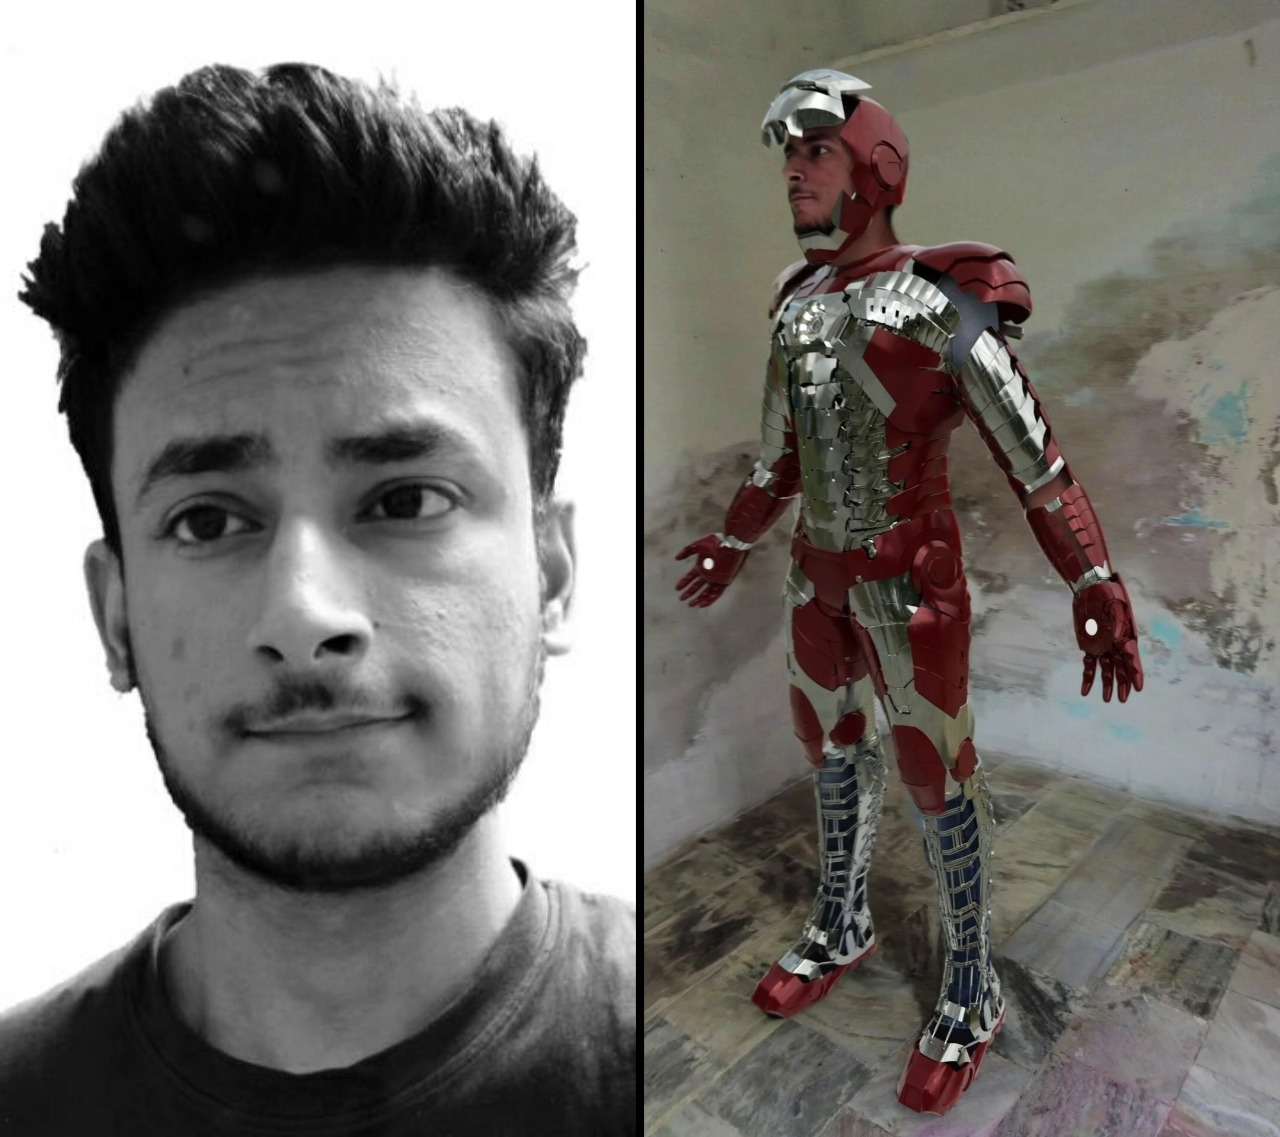 19 Year old Lokesh Khatri Got image as one of the best VFX Artist in YouTube.